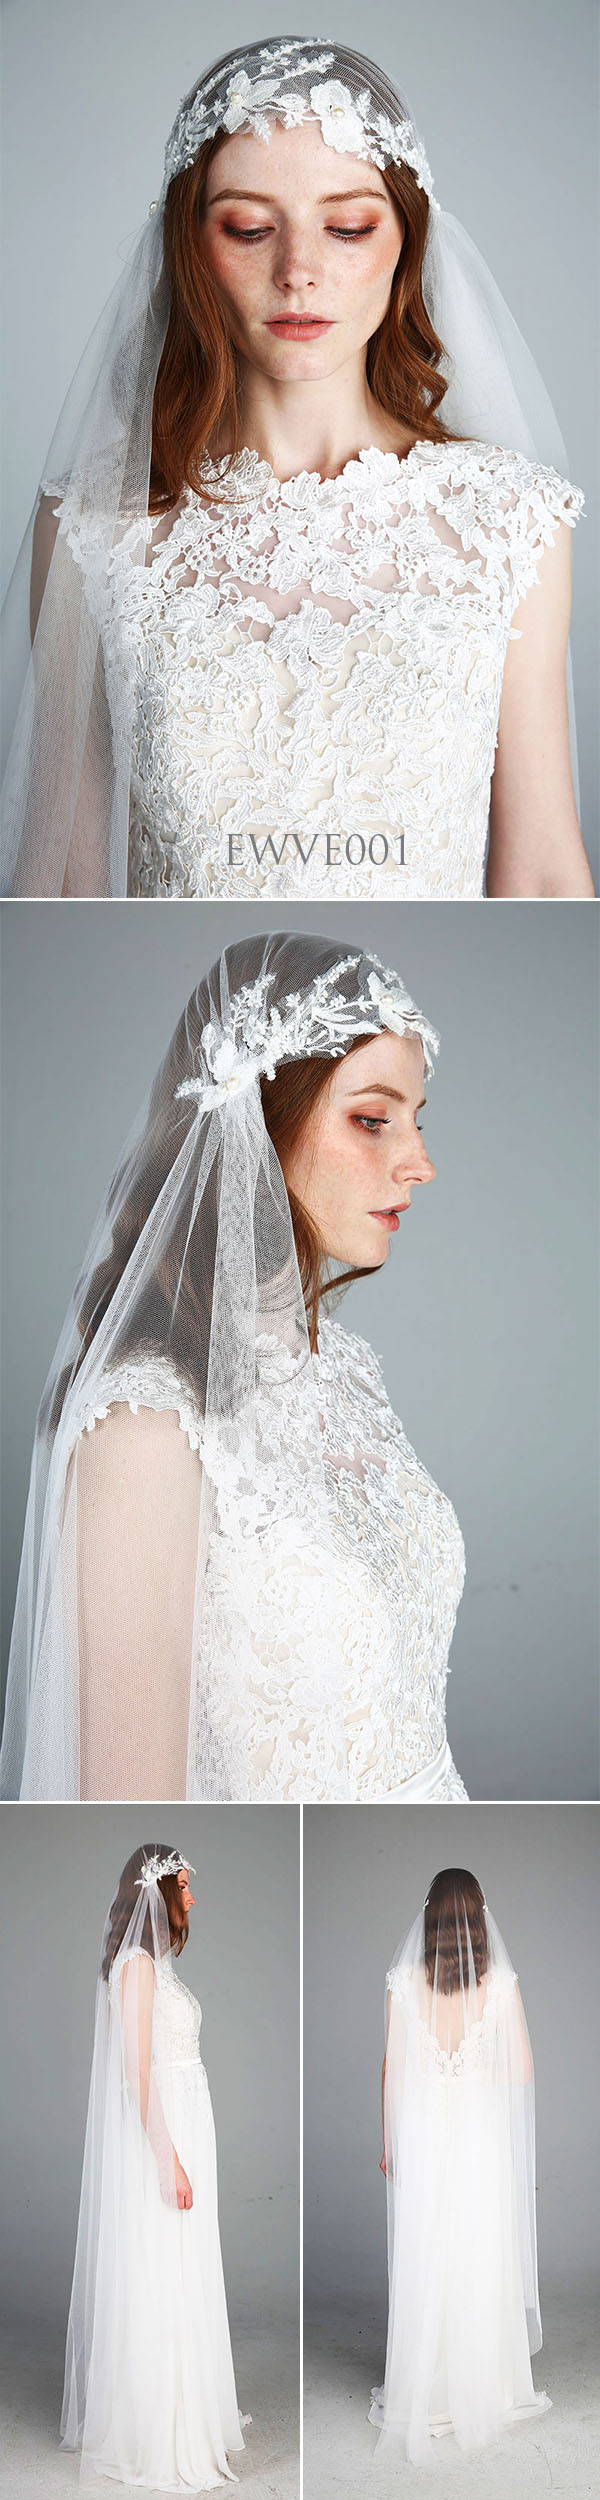 Bohemian Juliet Cap Veil Wedding Lace Veil Chapel Veil